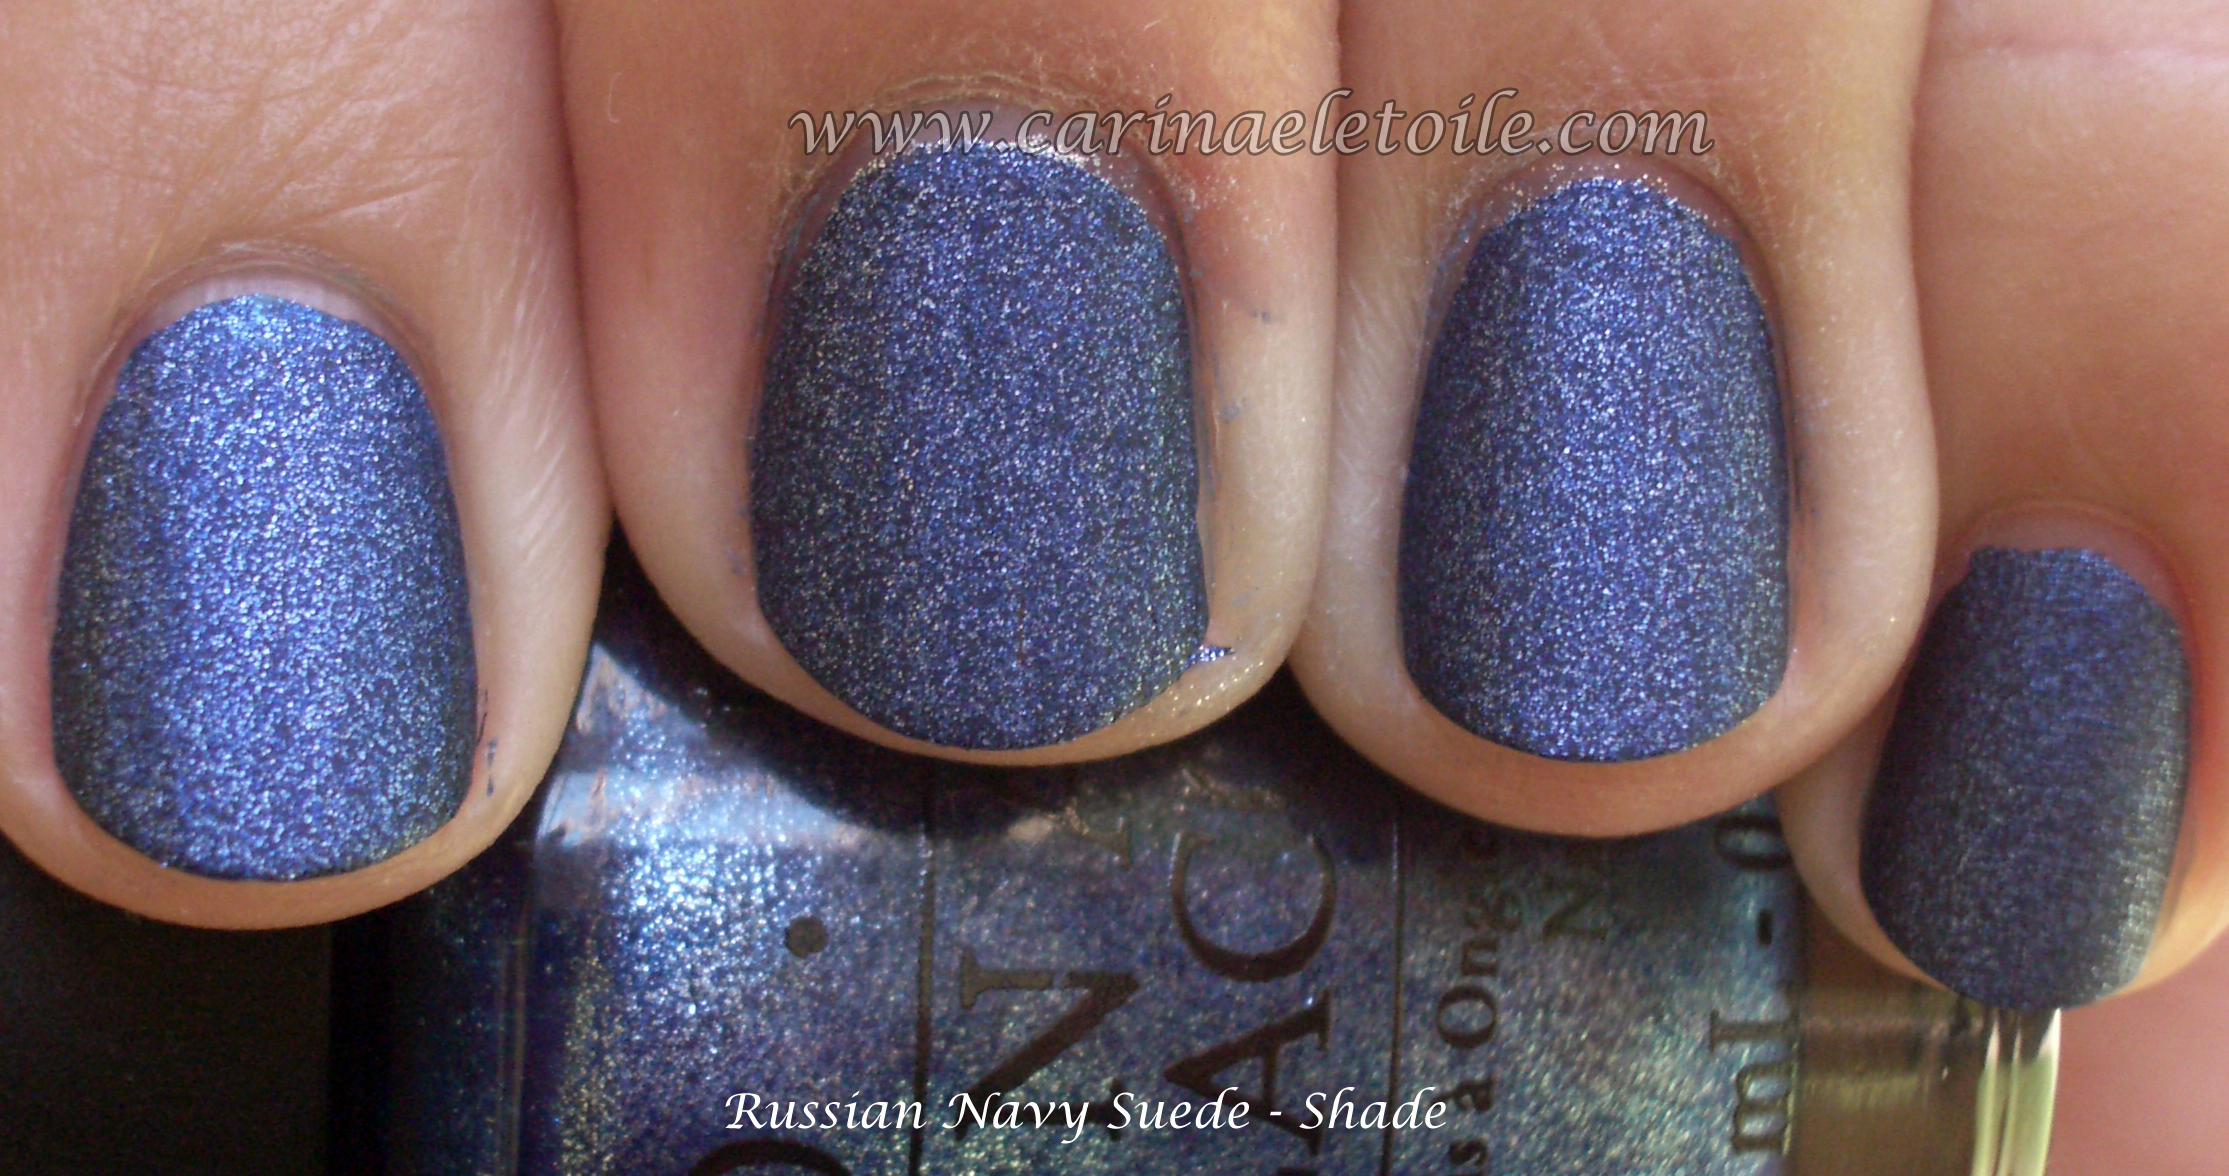 OPI Russian Navy Suede Shade | Carinae L\'etoile\'s polish stash